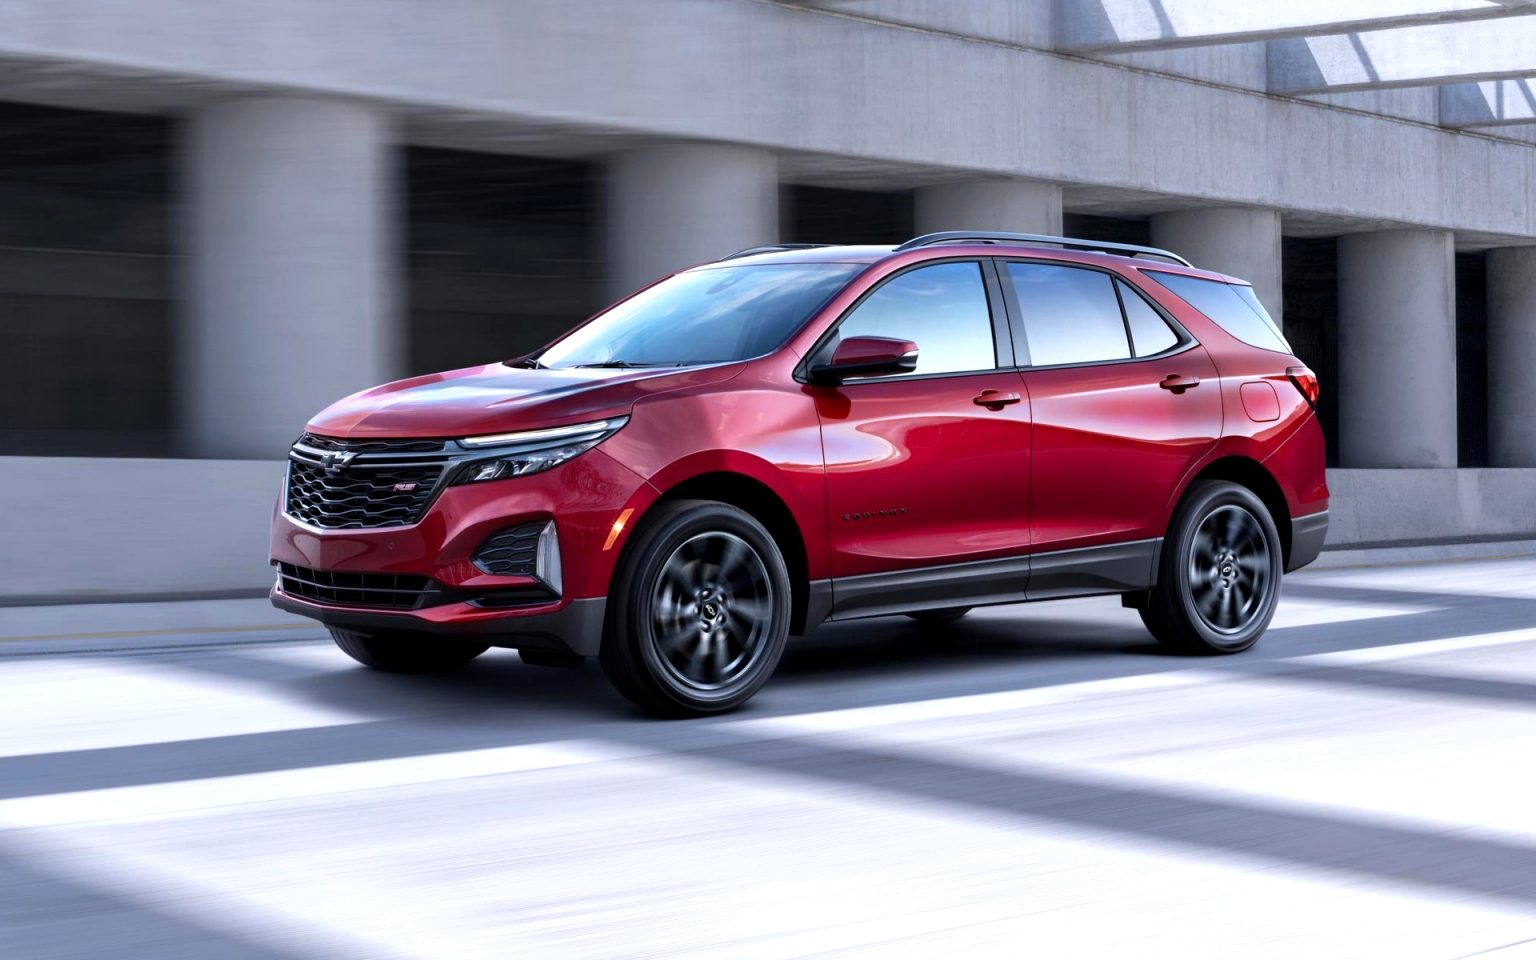 2021 chevrolet equinox review Pricing